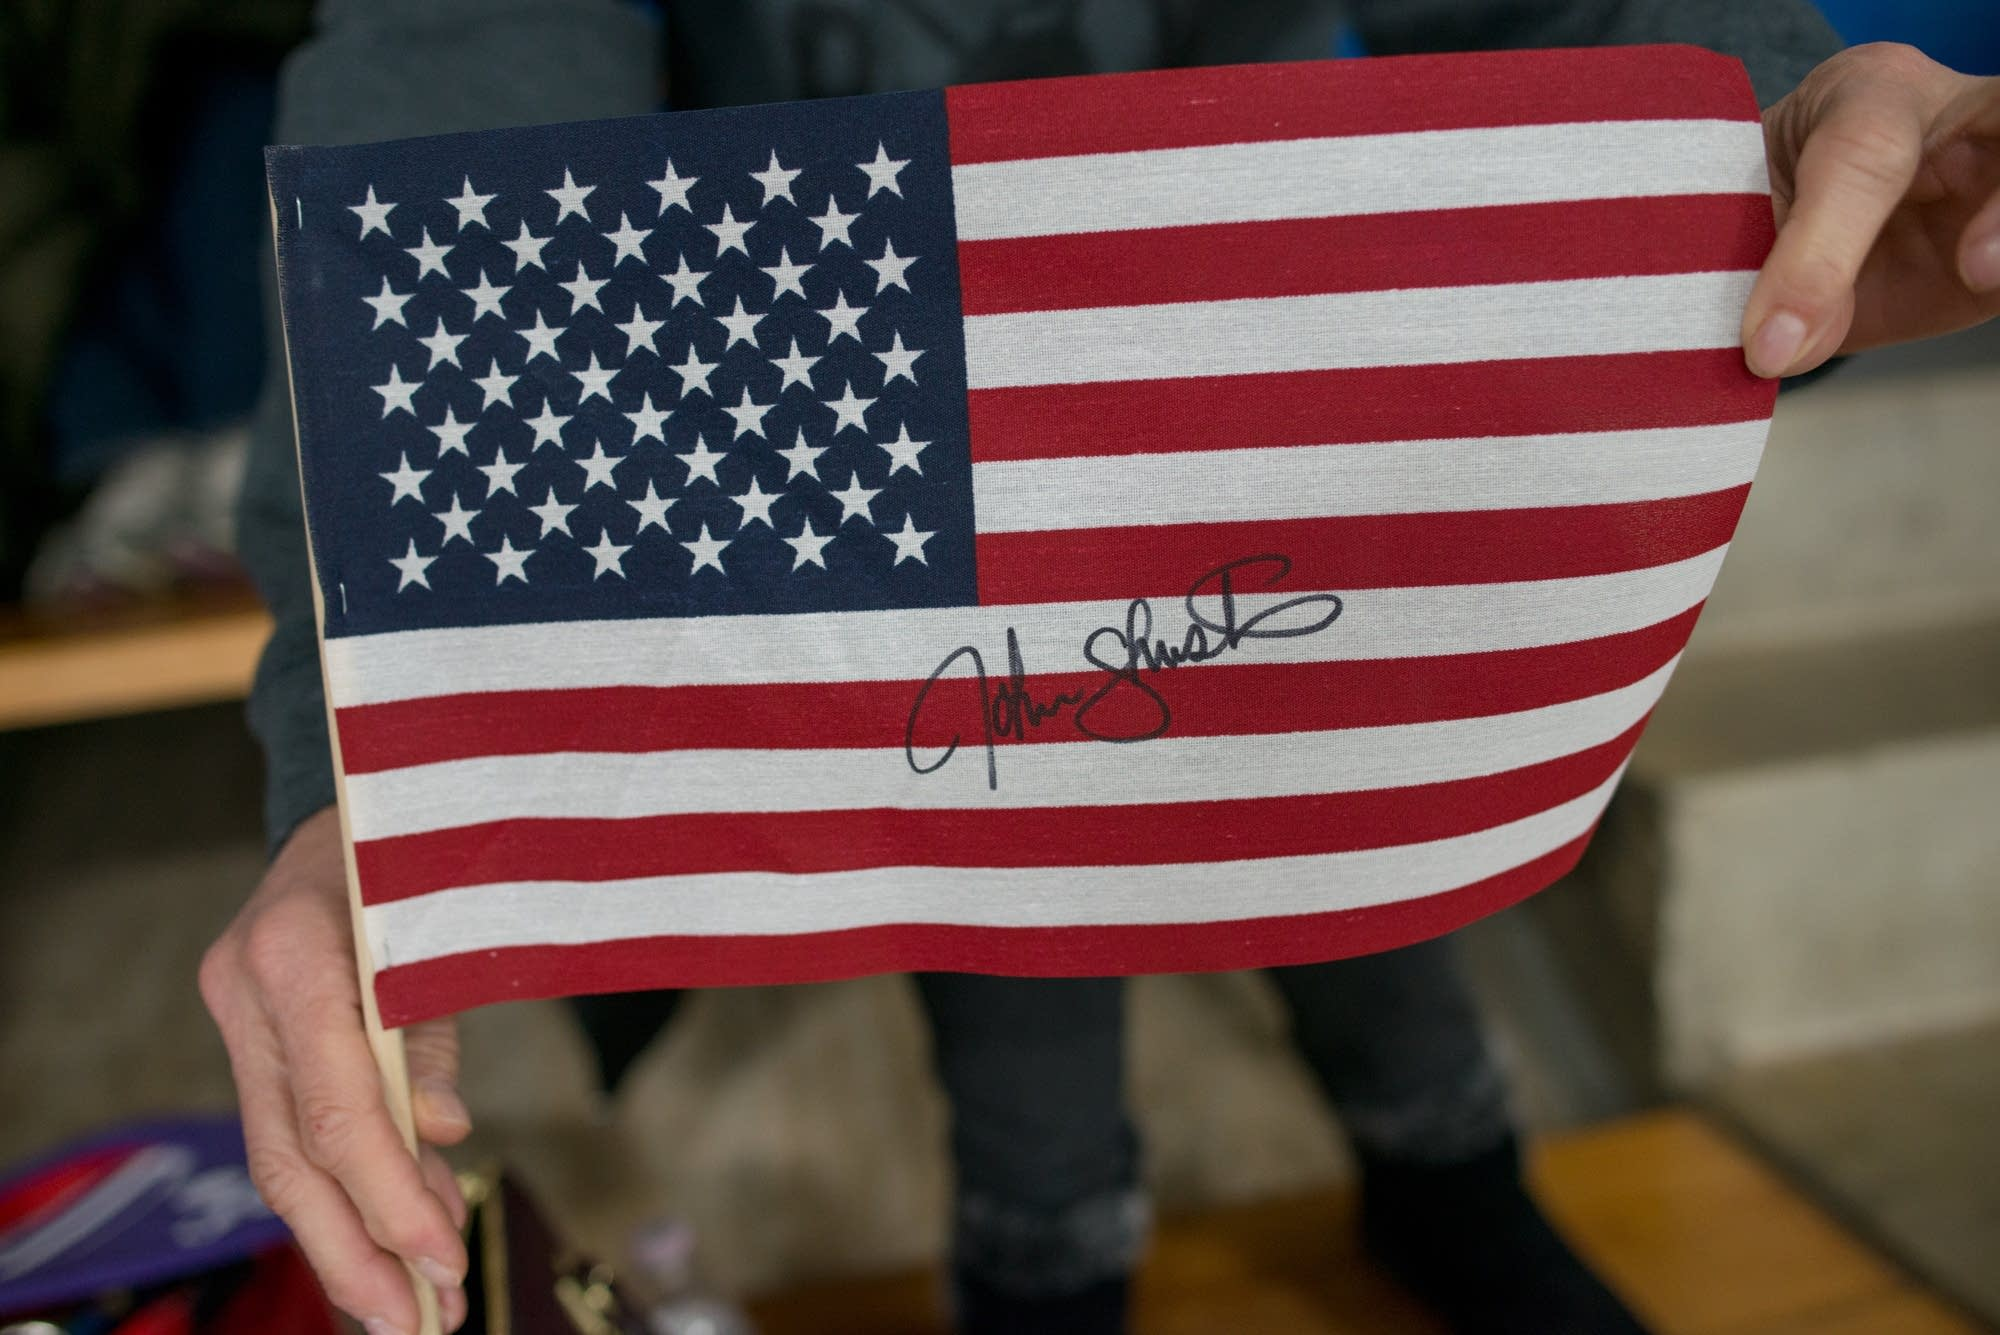 Ginny McDonald displays a flag signed by John Shuster.